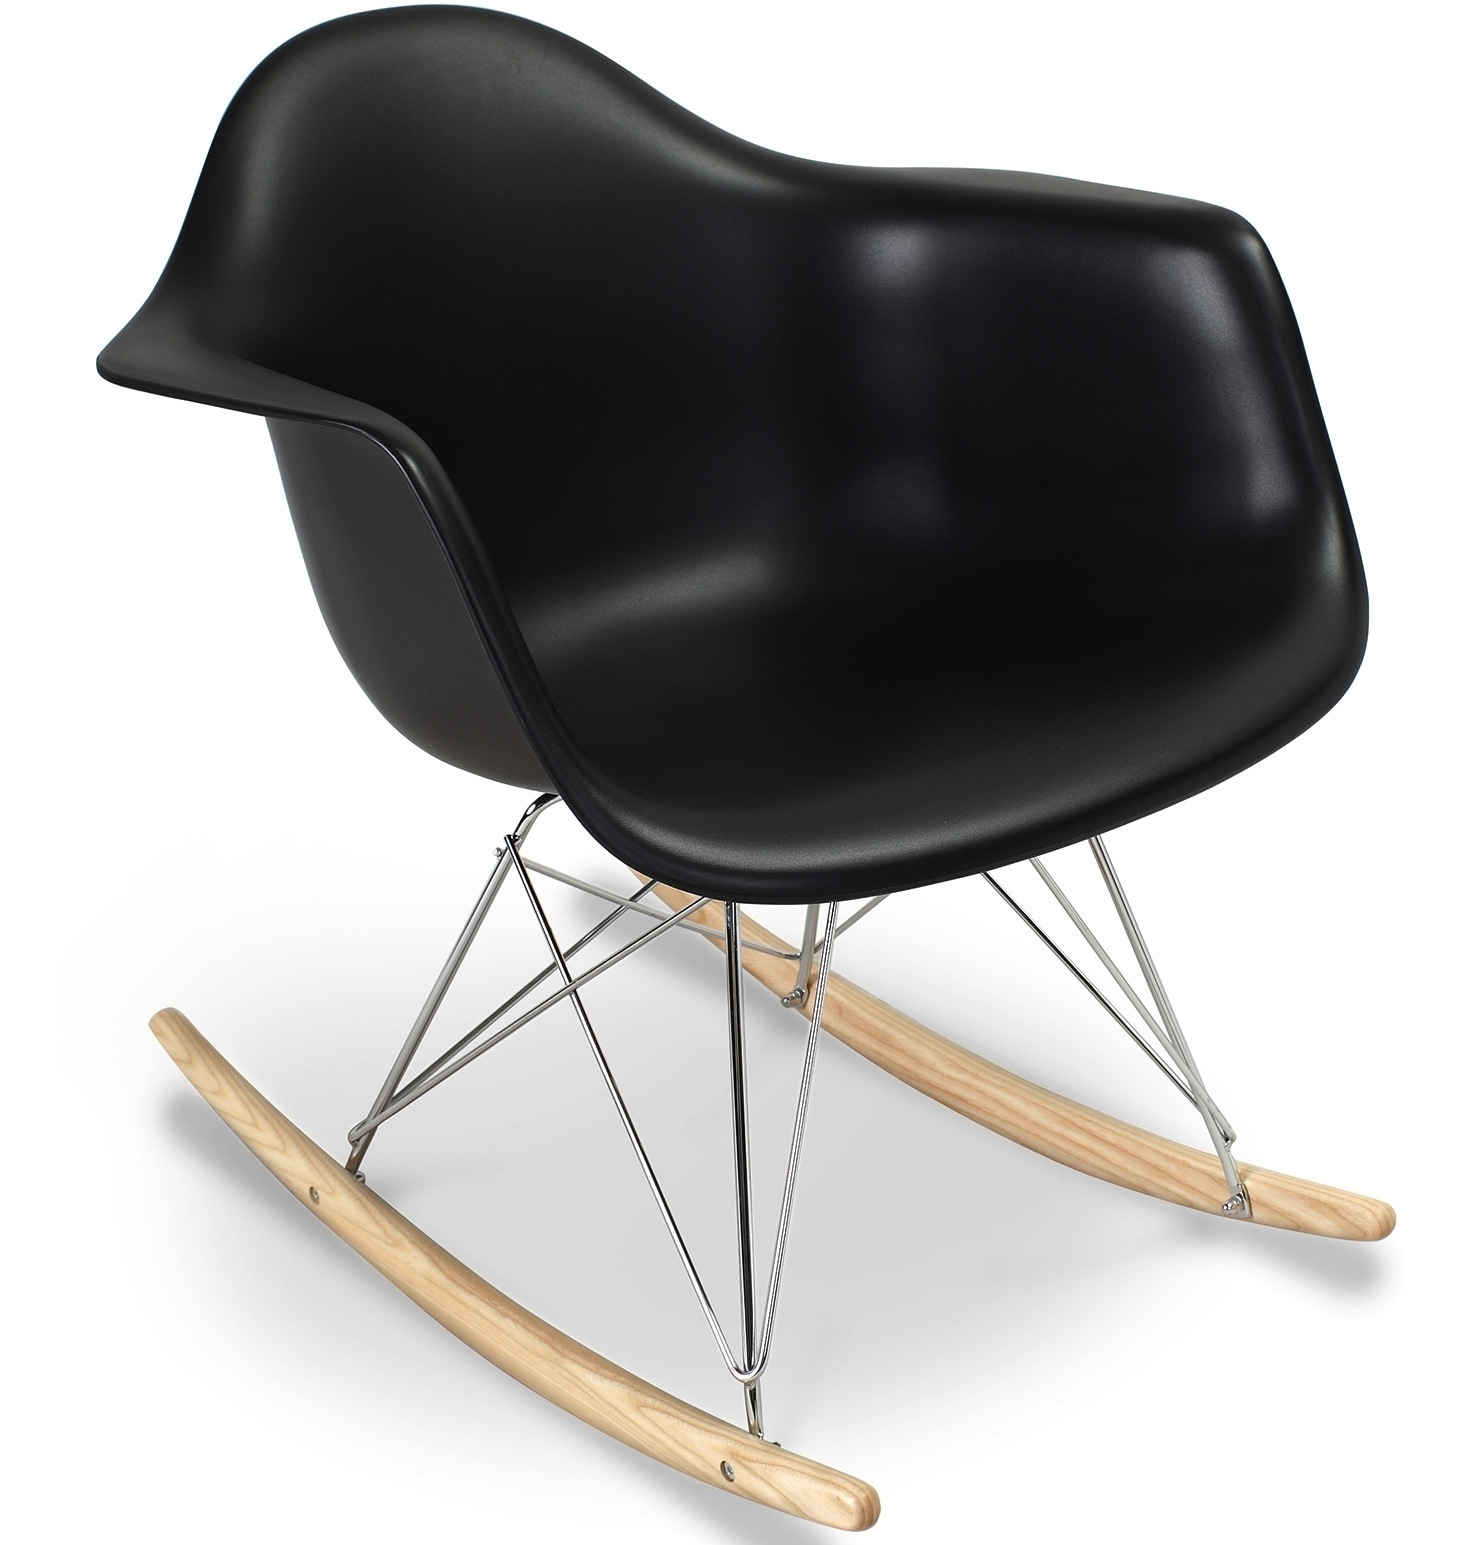 fauteuil bascule noir mat inspir charles eames. Black Bedroom Furniture Sets. Home Design Ideas